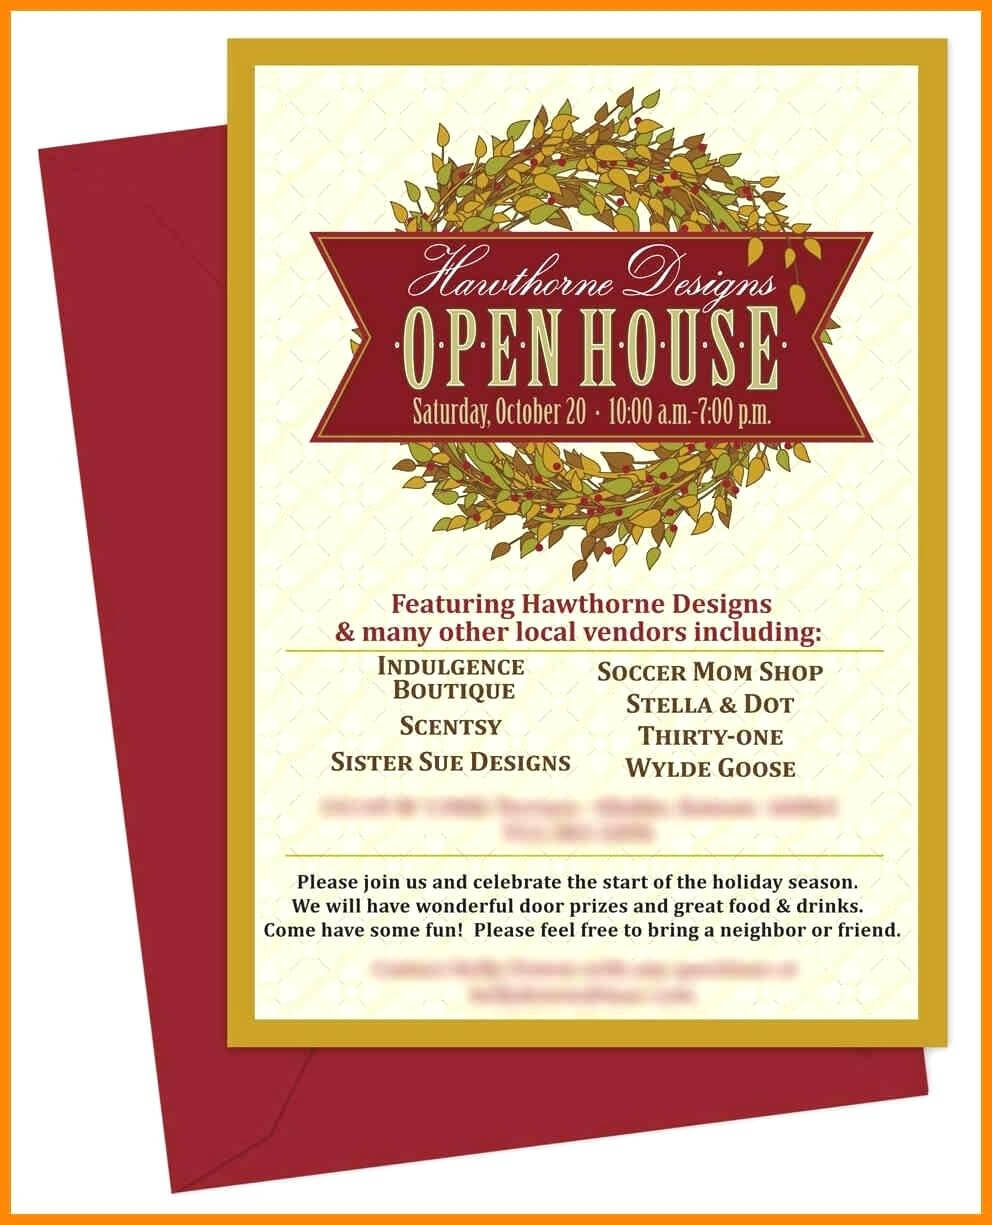 008 Open House Invitation Templates Business Template For Business Open House Invitation Templates Free